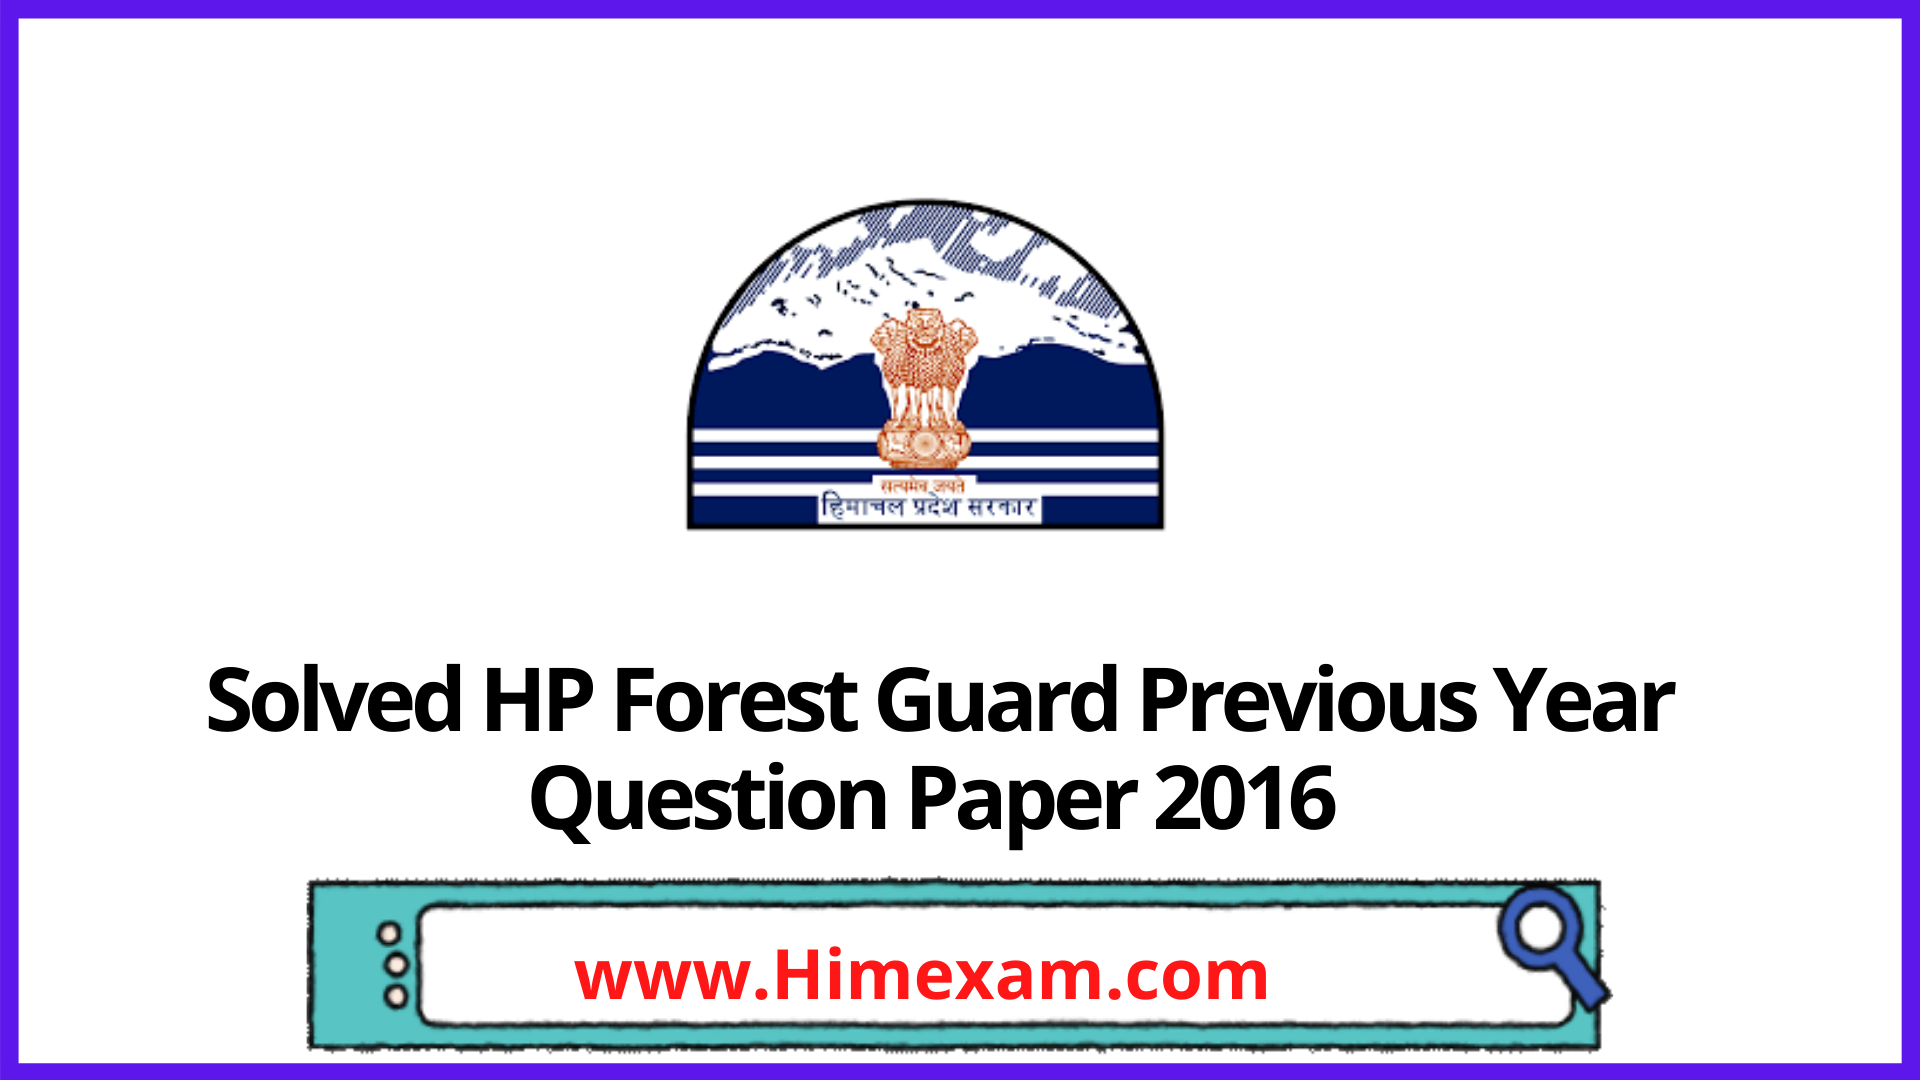 Solved HP Forest Guard Previous Year Question Paper 2016